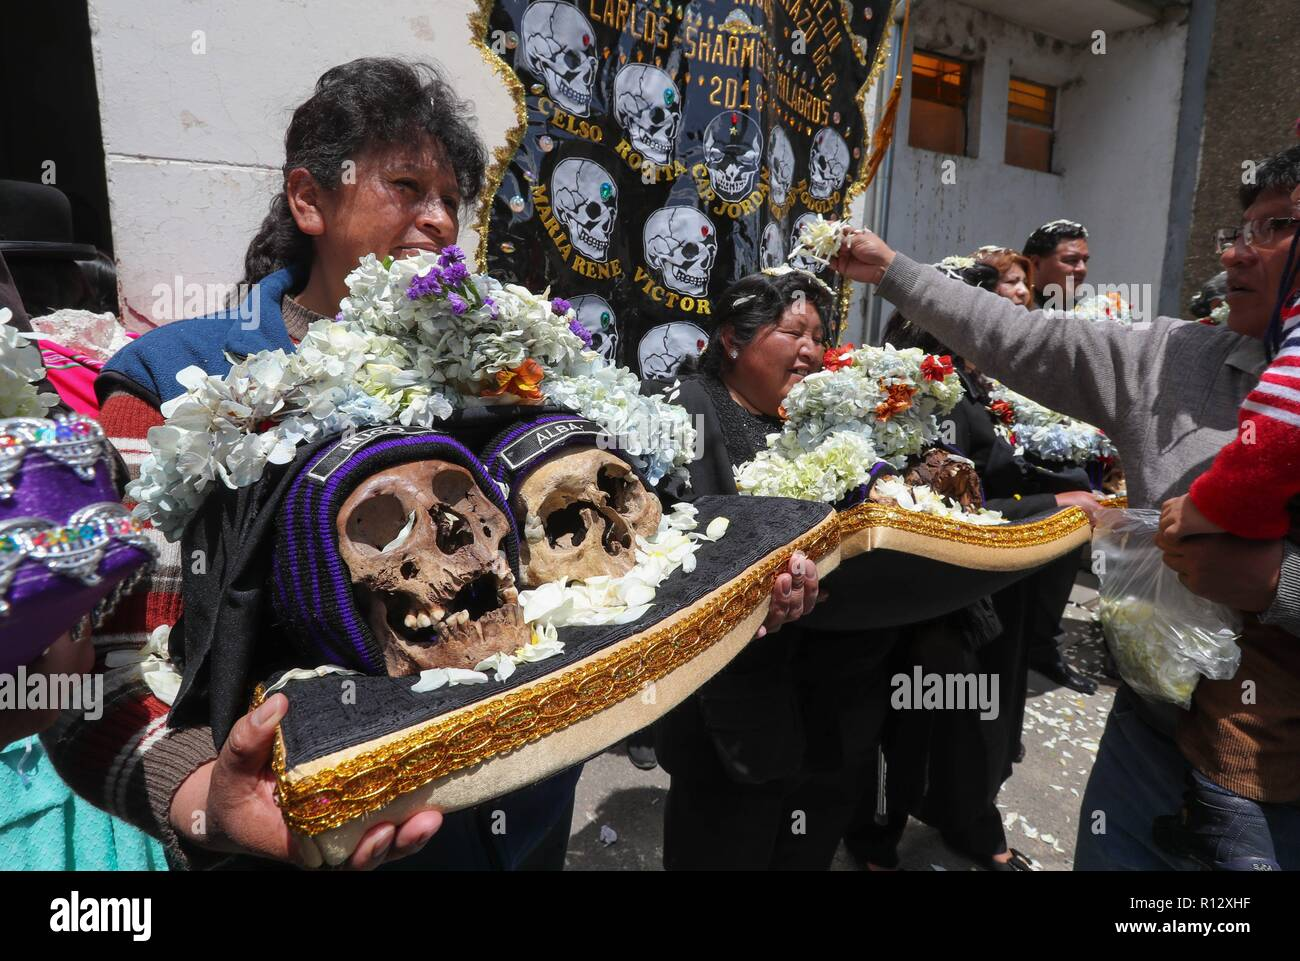 La Paz, Bolivia. 08th Nov, 2018. Bolivian citizens show human skulls called 'natitas' on the occasion of the 'natitas' festivity, in La Paz, Bolivia, 08 November 2018. The celebrations to honor the dead in Bolivia started past 01 November and end today with the peculiar festivity dedicated to these human skulls which are believed to possess protective capacities. Credit: Martin Alipaz/EFE/Alamy Live News - Stock Image